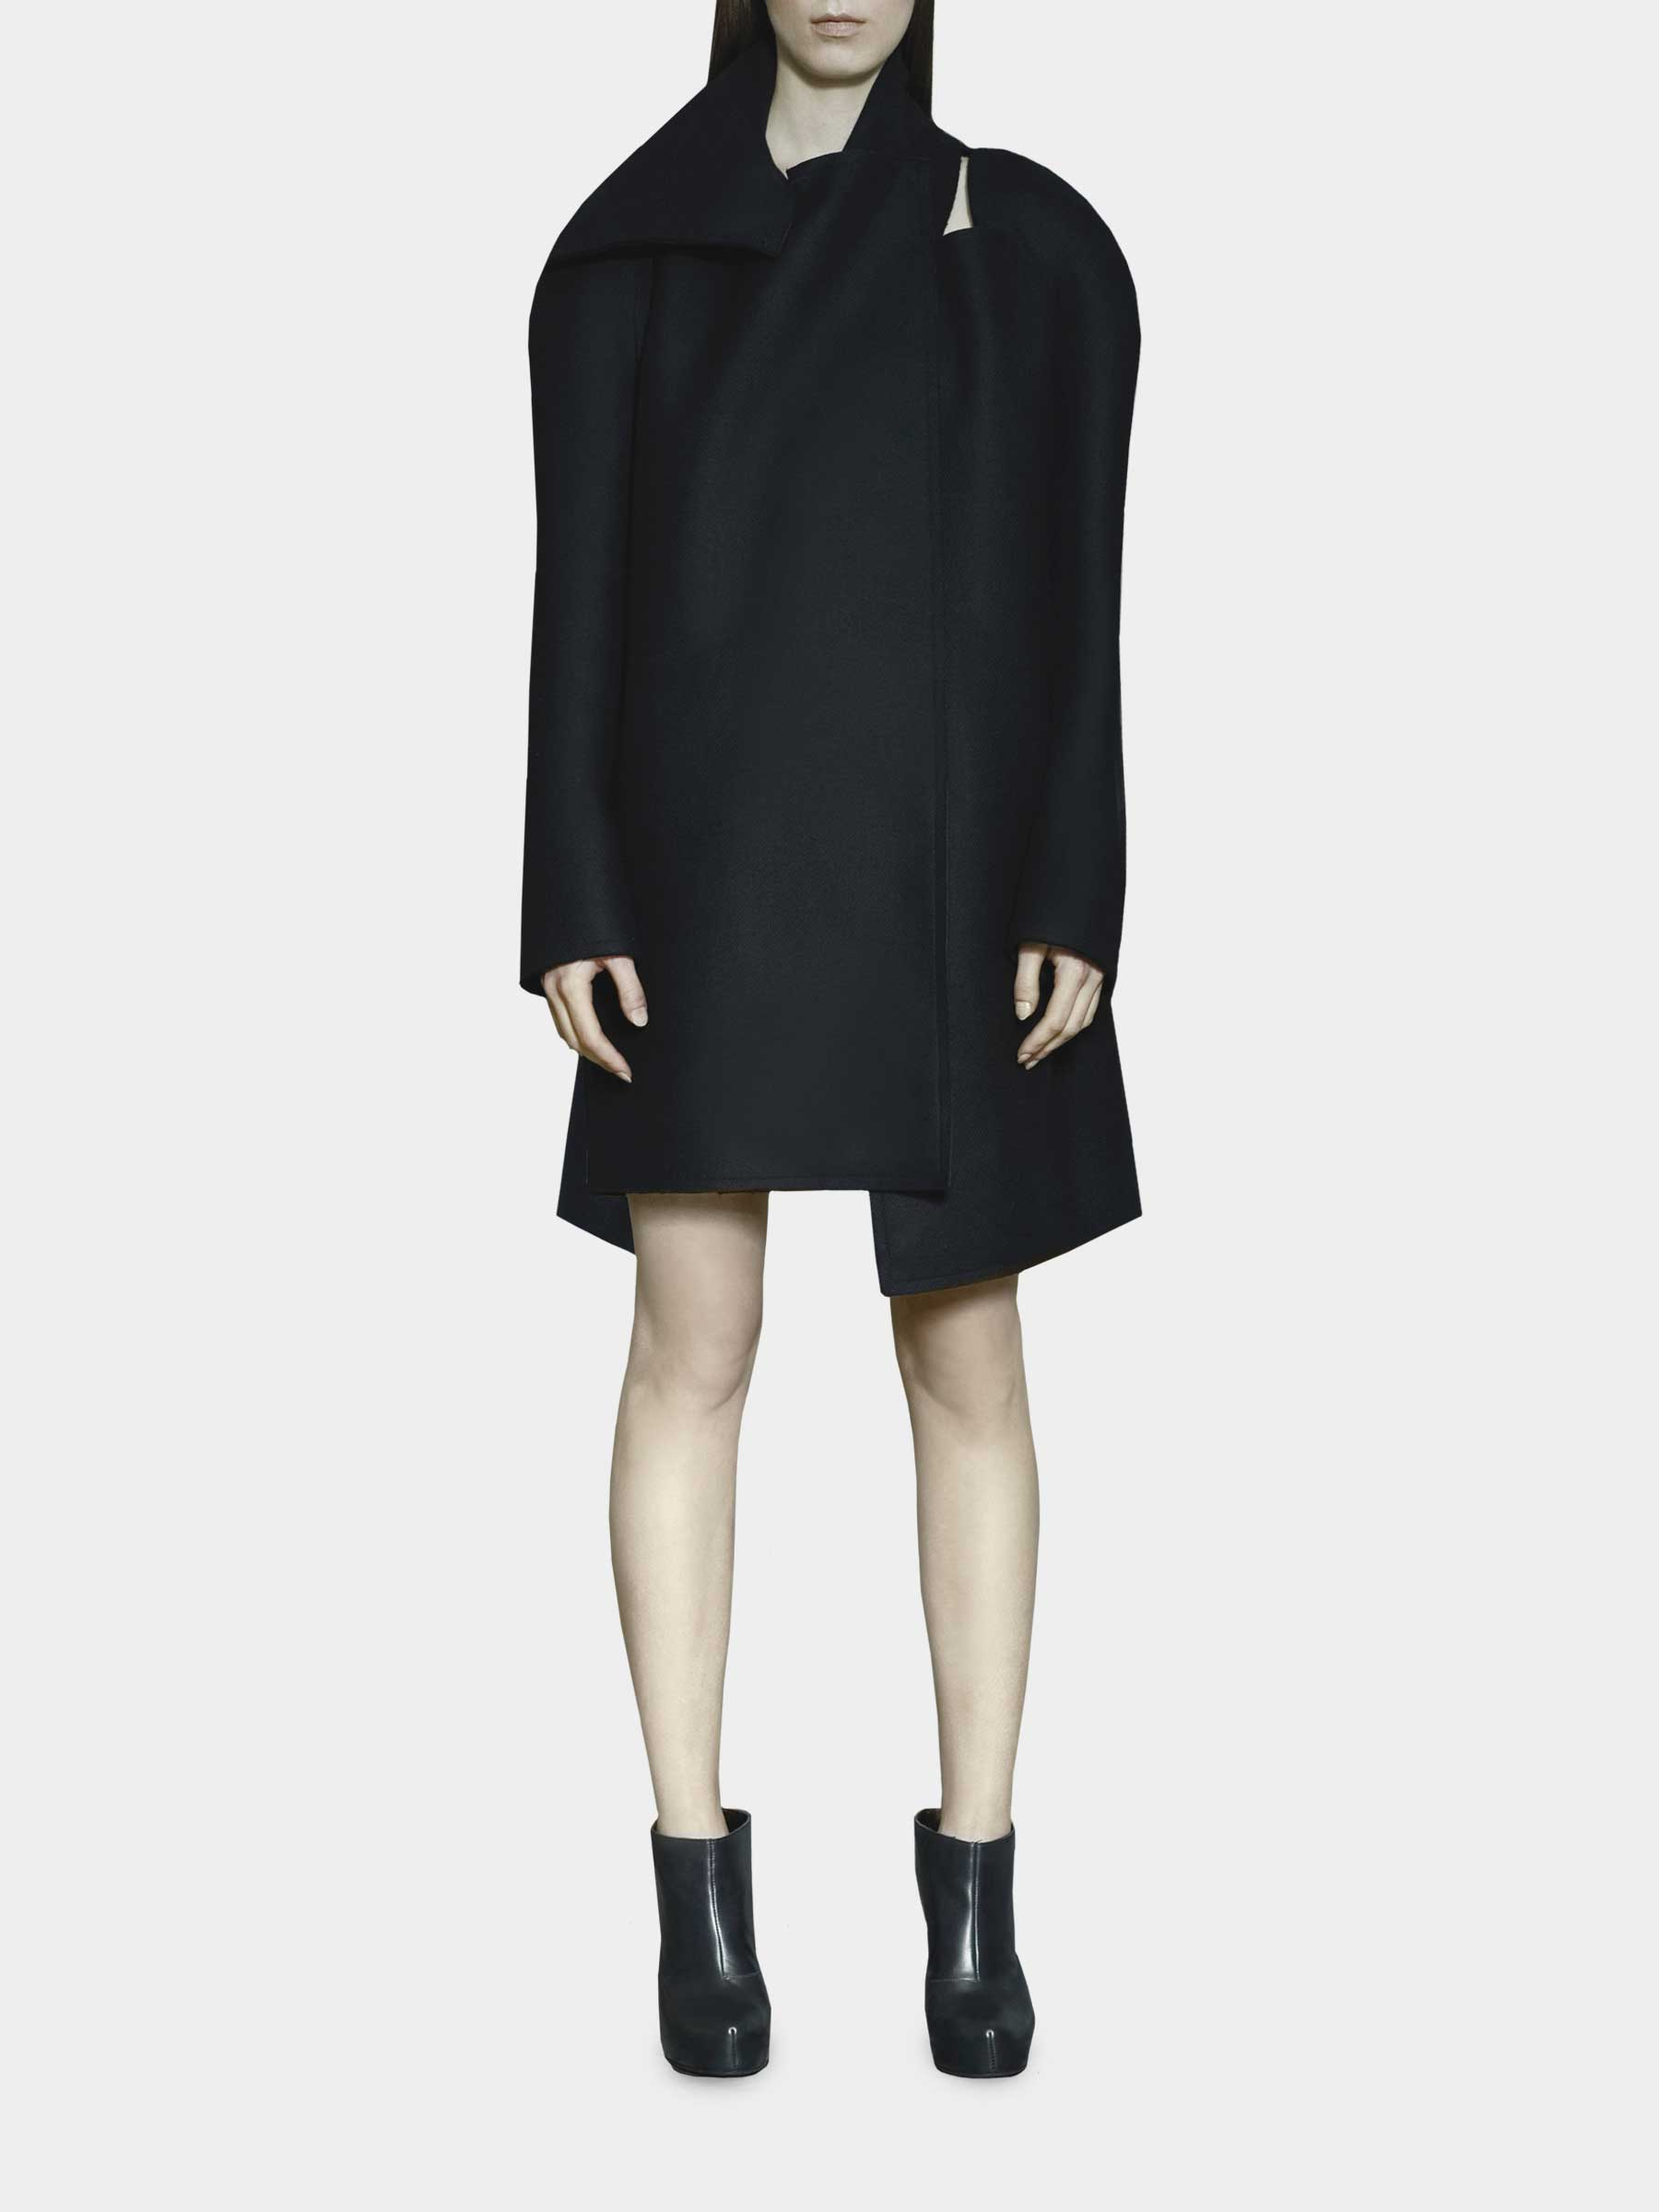 Joanna Organisciak Black Asymmetrical Coat